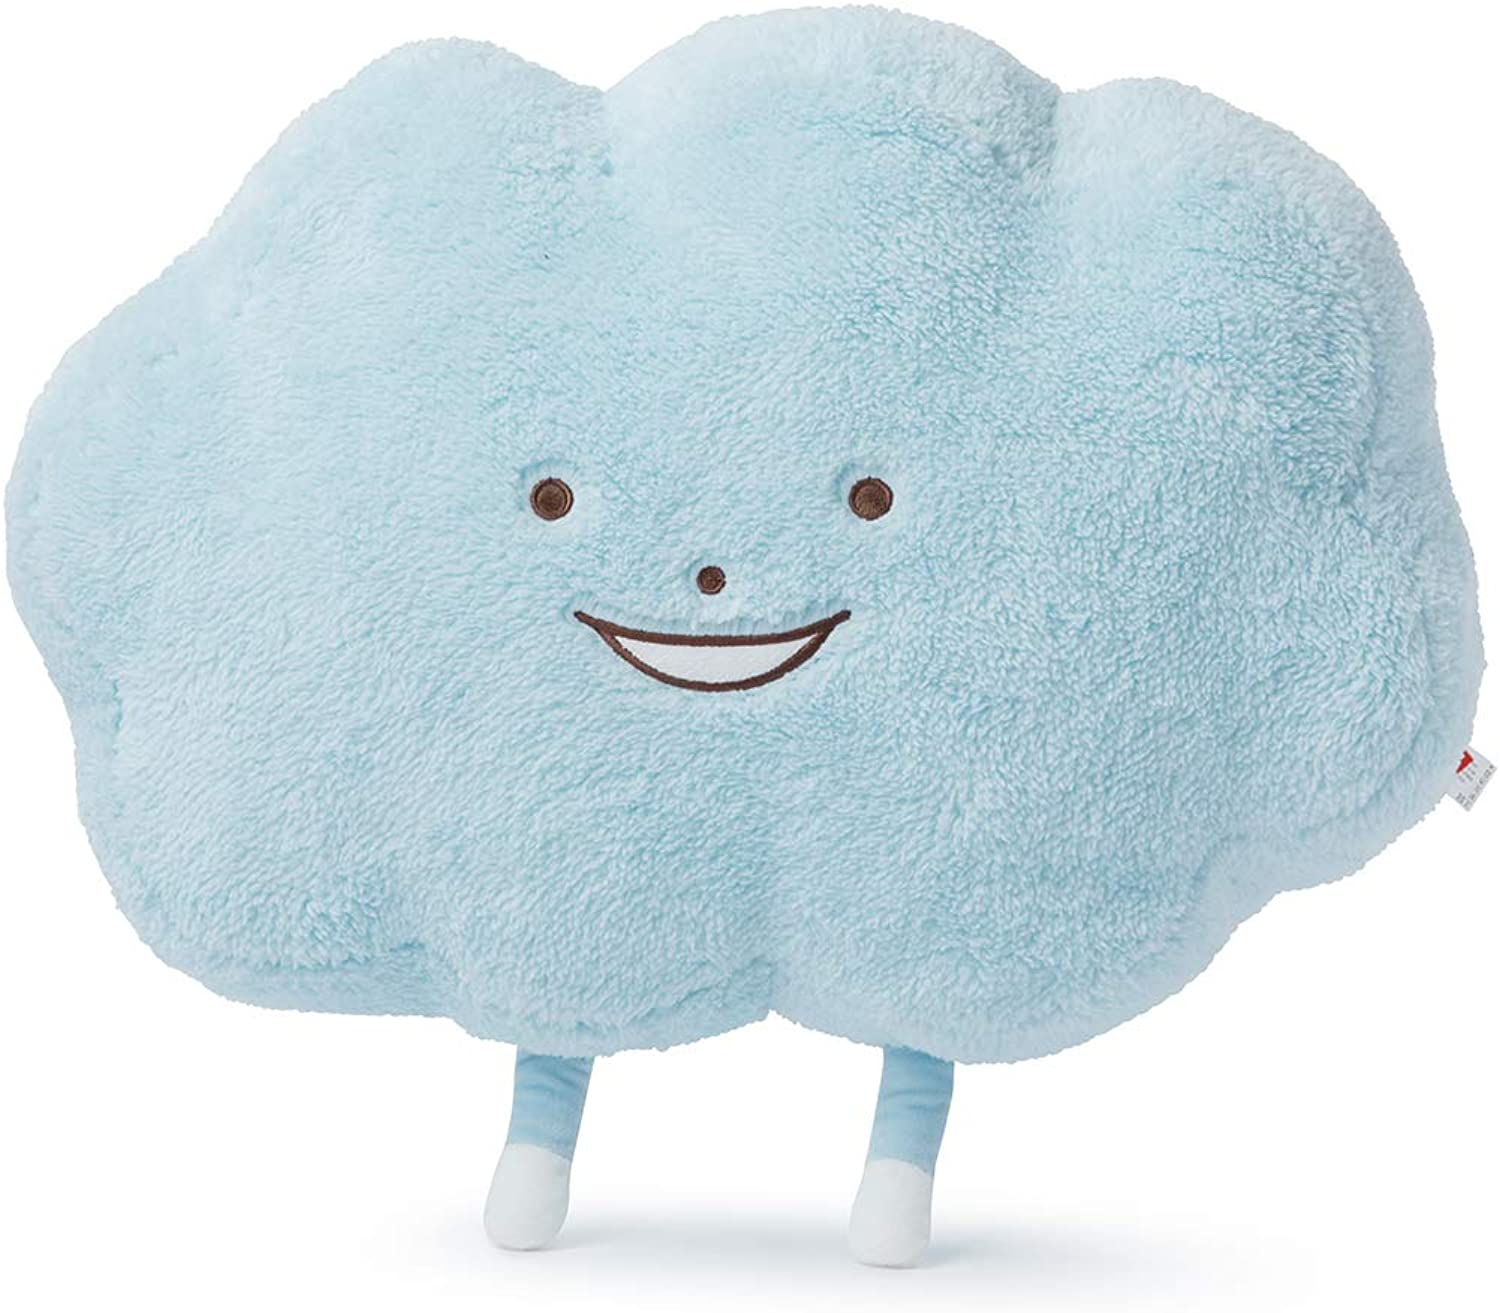 ROY6 Merchandise by Line Friends  LOUDY Character 18  Plush Pillow Decorative Cushion Doll, Light bluee